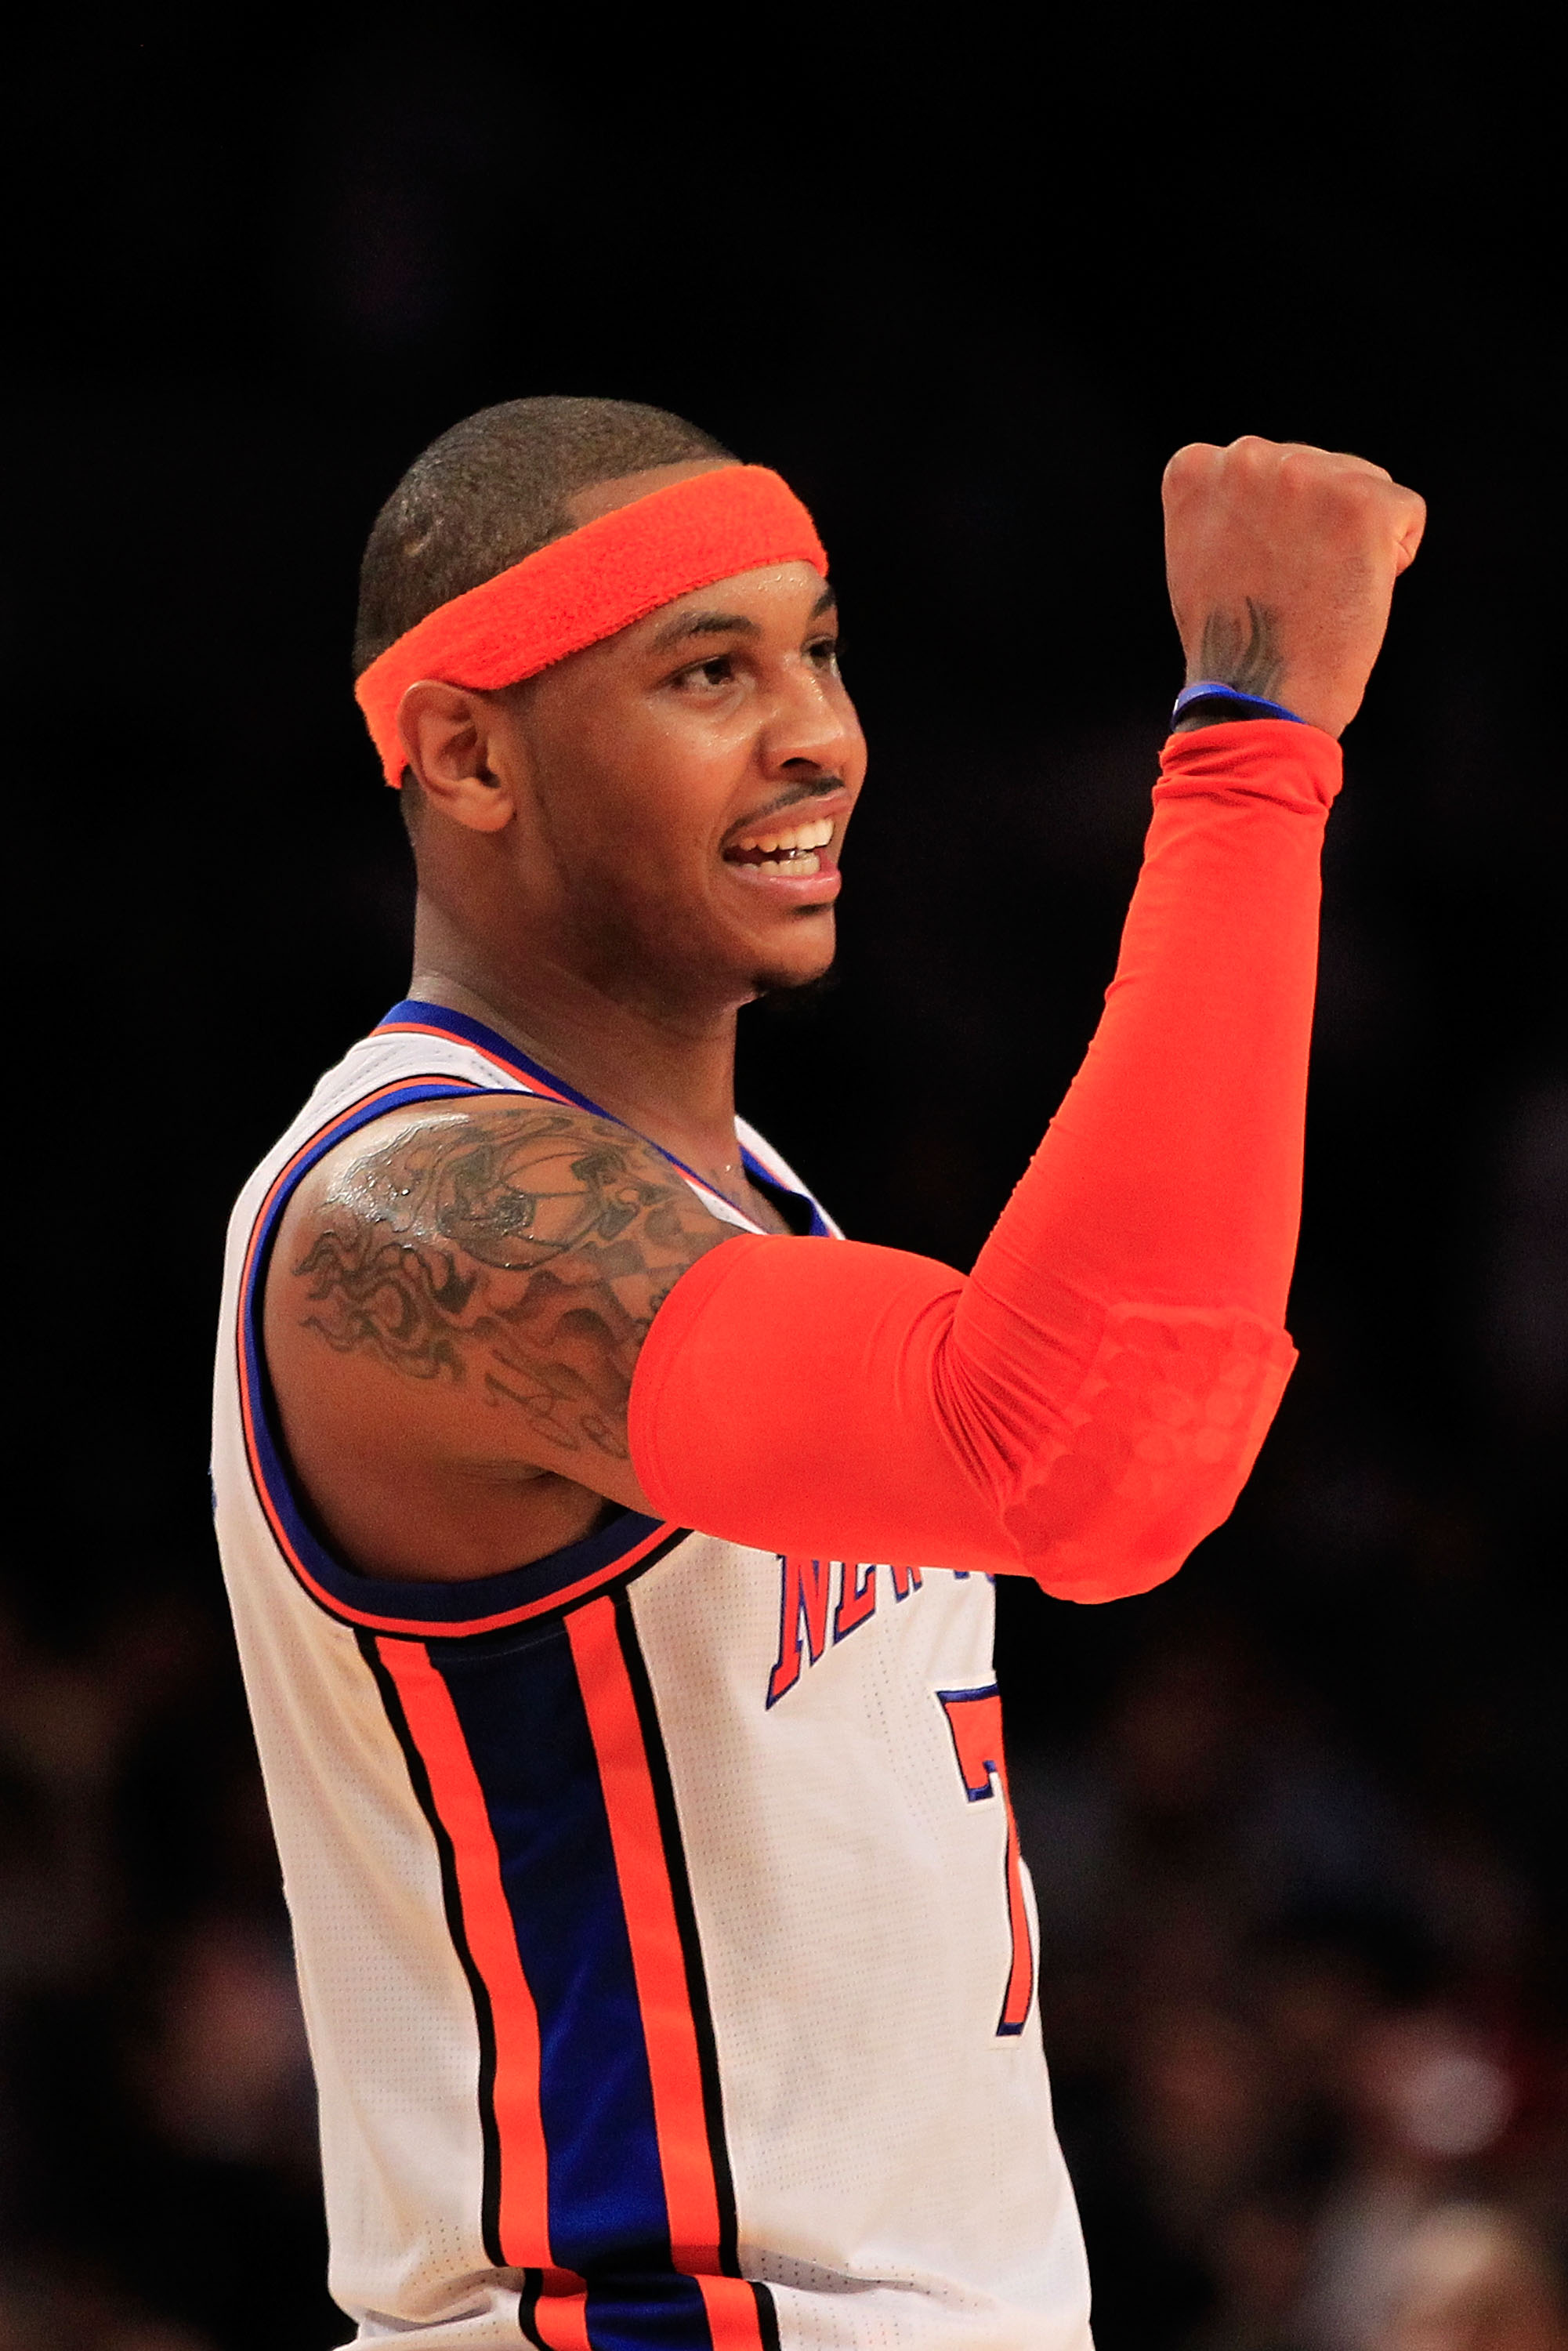 Melo will have reason to smile soon